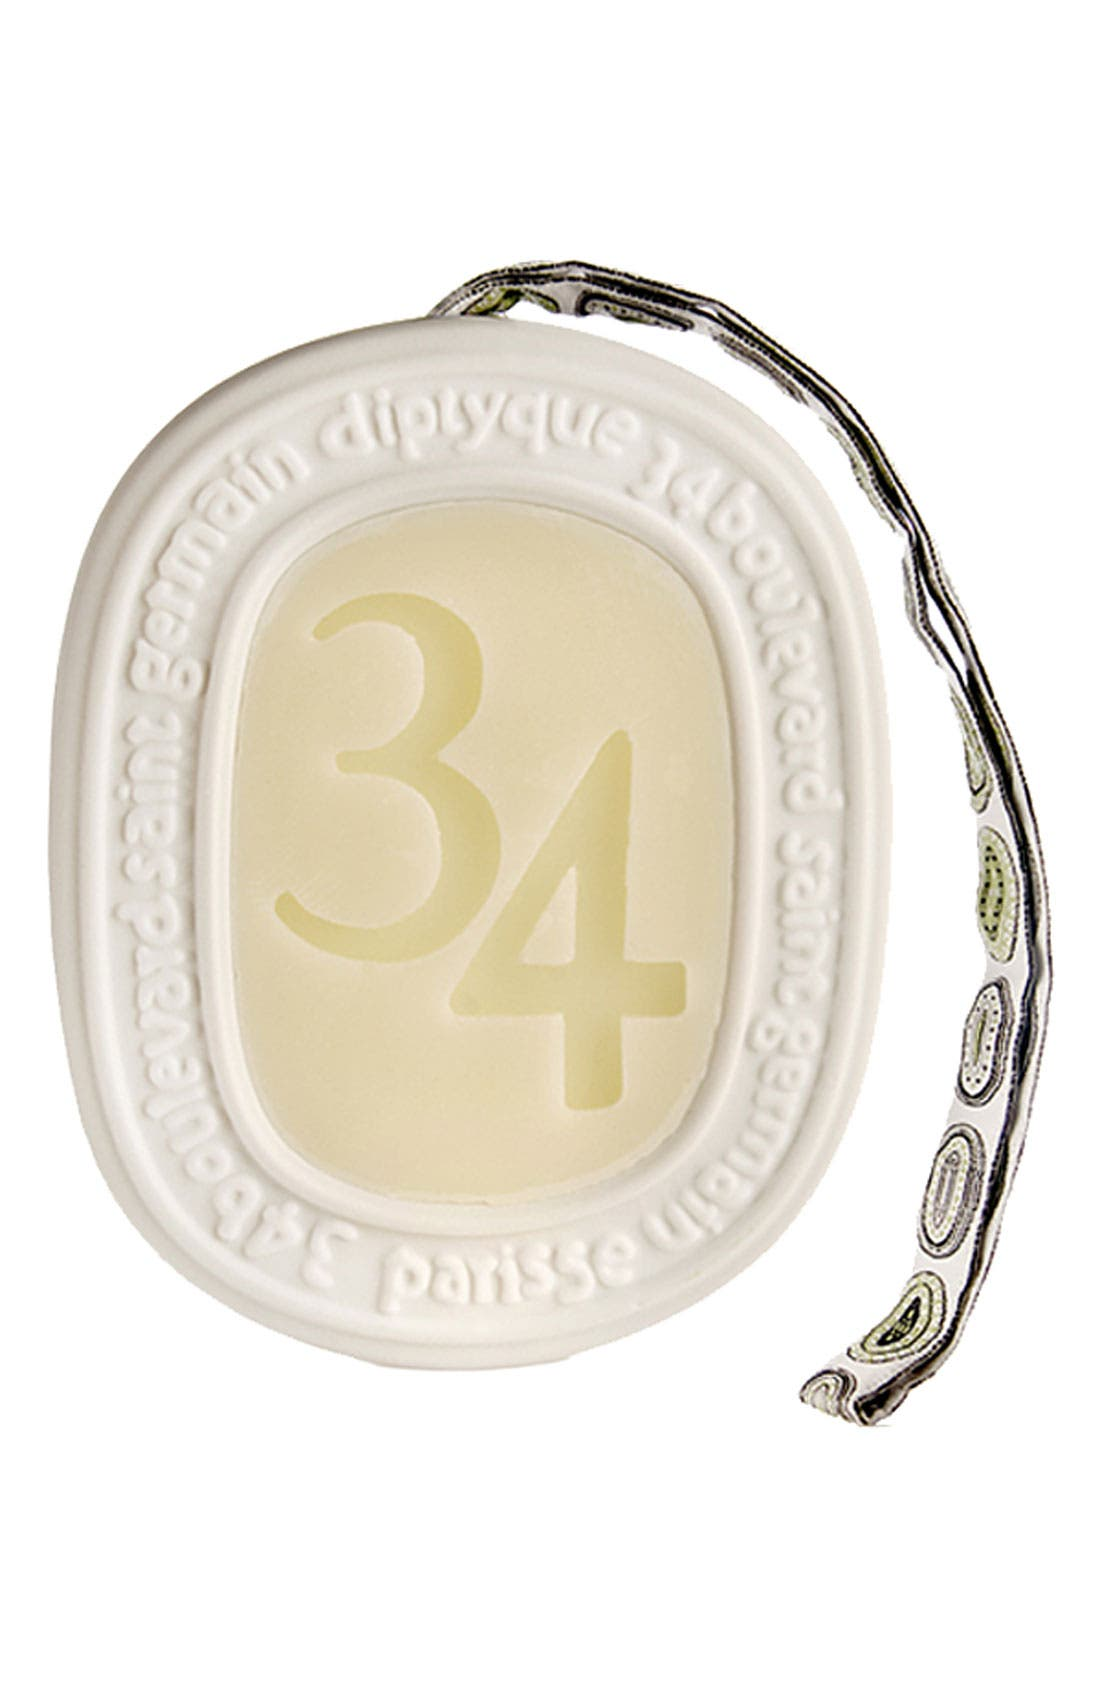 Main Image - diptyque '34' Scented Oval